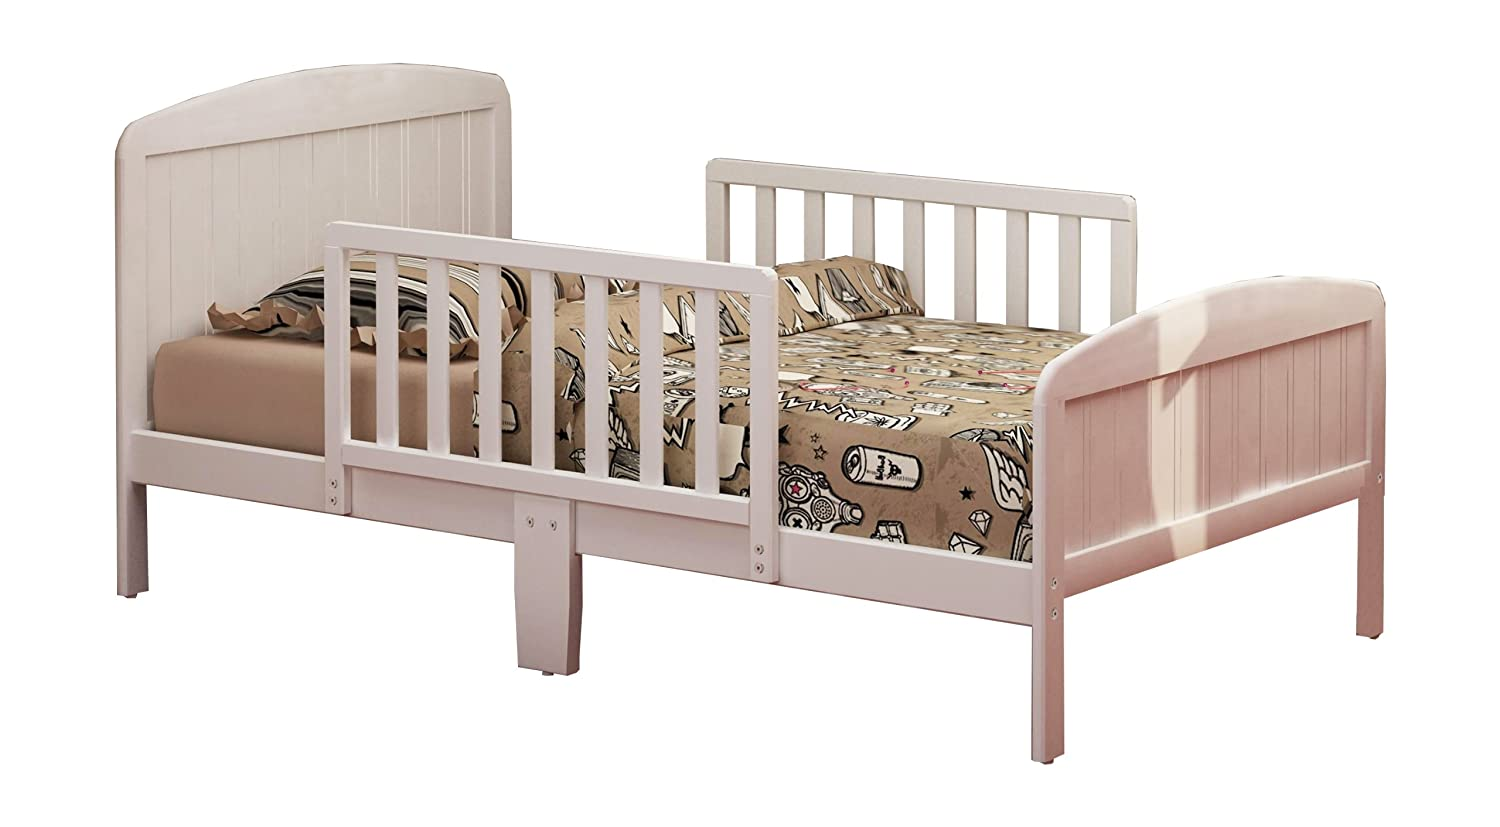 Rack Furniture RR5010WW Harrisburg Toddler Bed Warm White RC5010WW